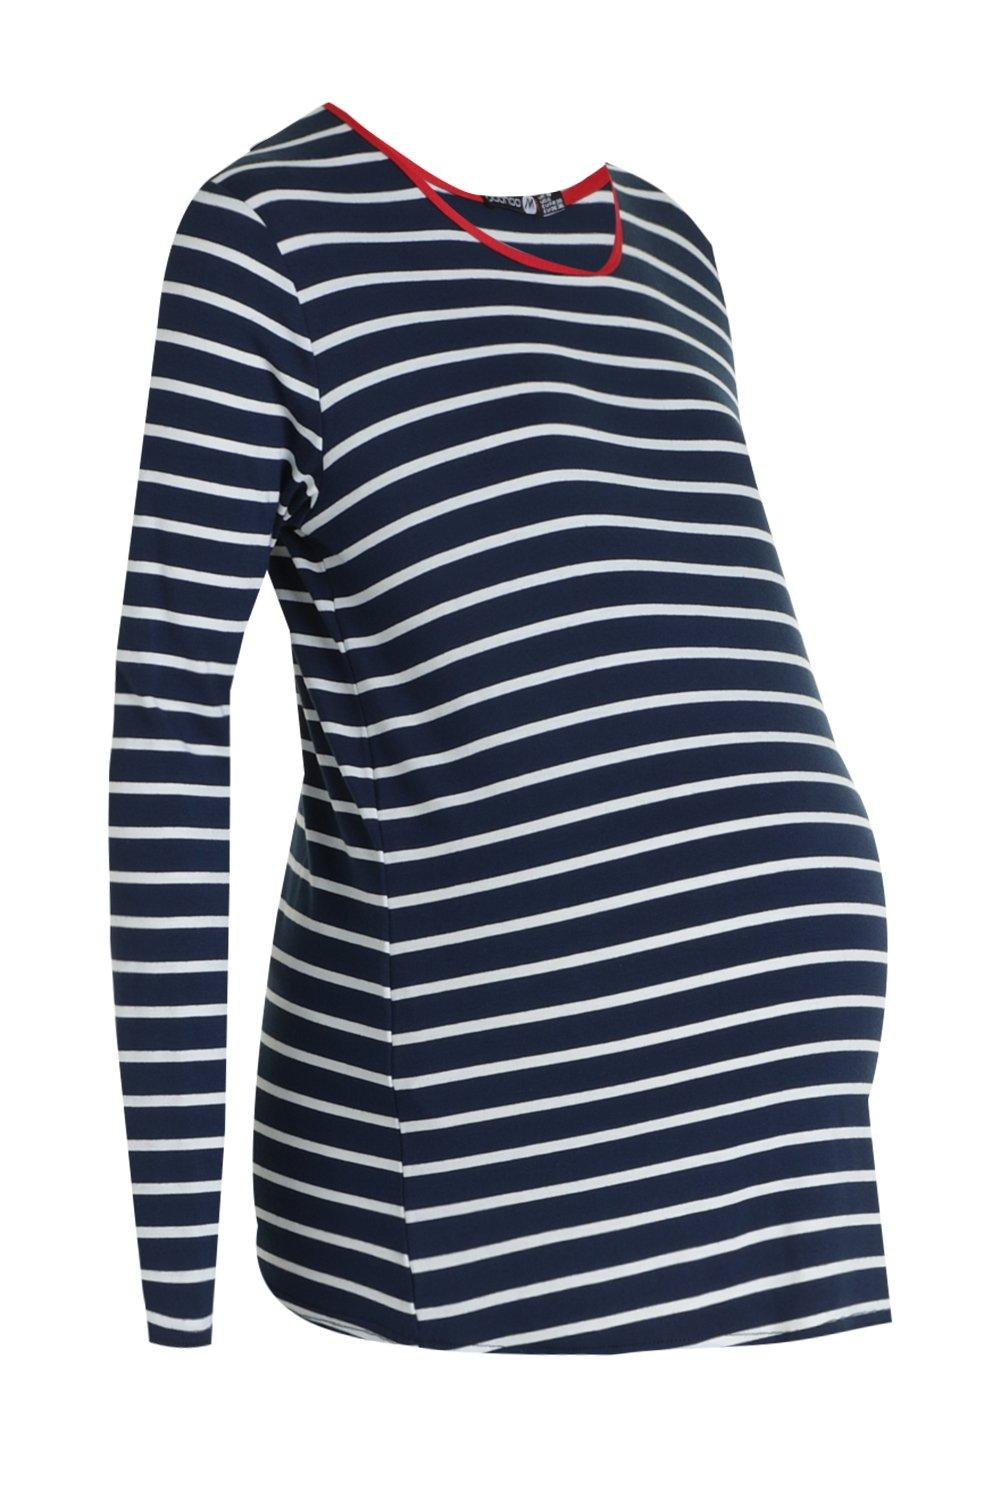 Stripe Maternity Top Sleeve navy Long rzfvrqdxw